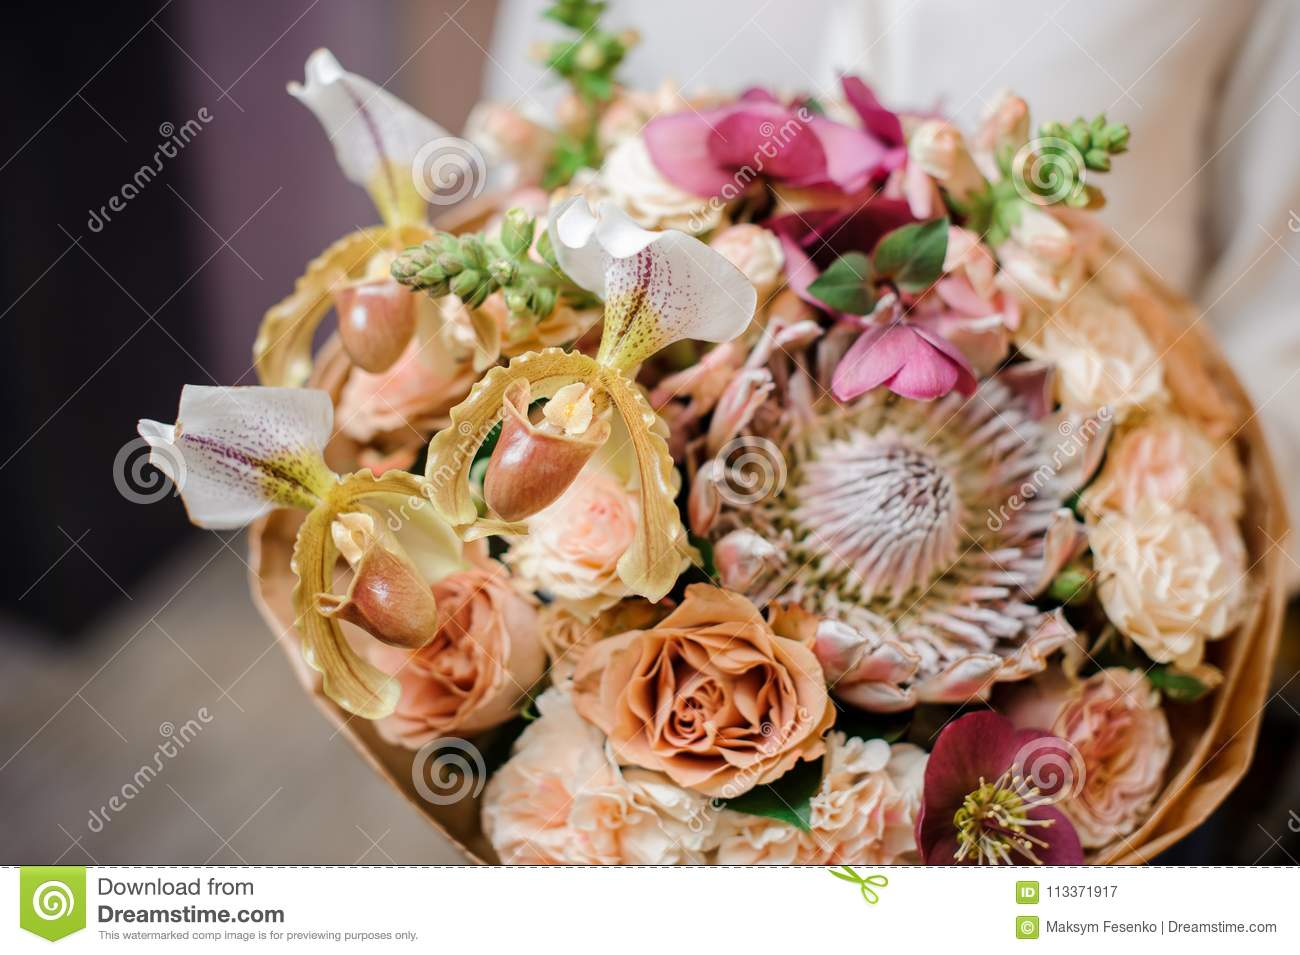 Girl holding a beautiful bouquet of champagne colour flowers stock download girl holding a beautiful bouquet of champagne colour flowers stock image image of brown izmirmasajfo